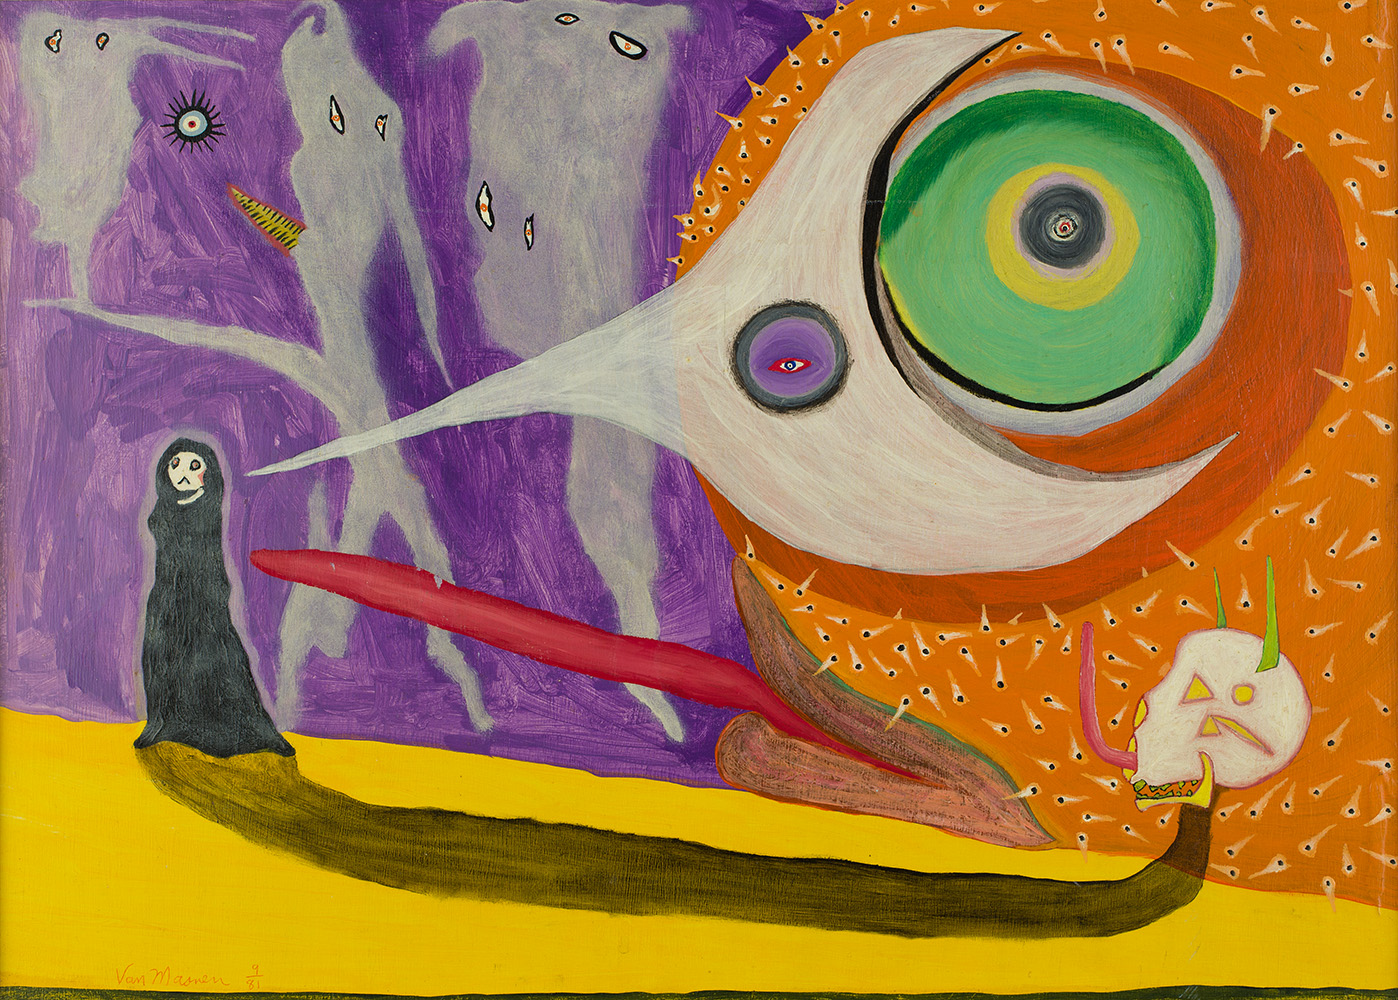 Gregory Van Maanen    The Science of Writing  , 8/28/1981 Acrylic on board 12.5 x 17.25 inches 31.8 x 43.8 cm GVM 73